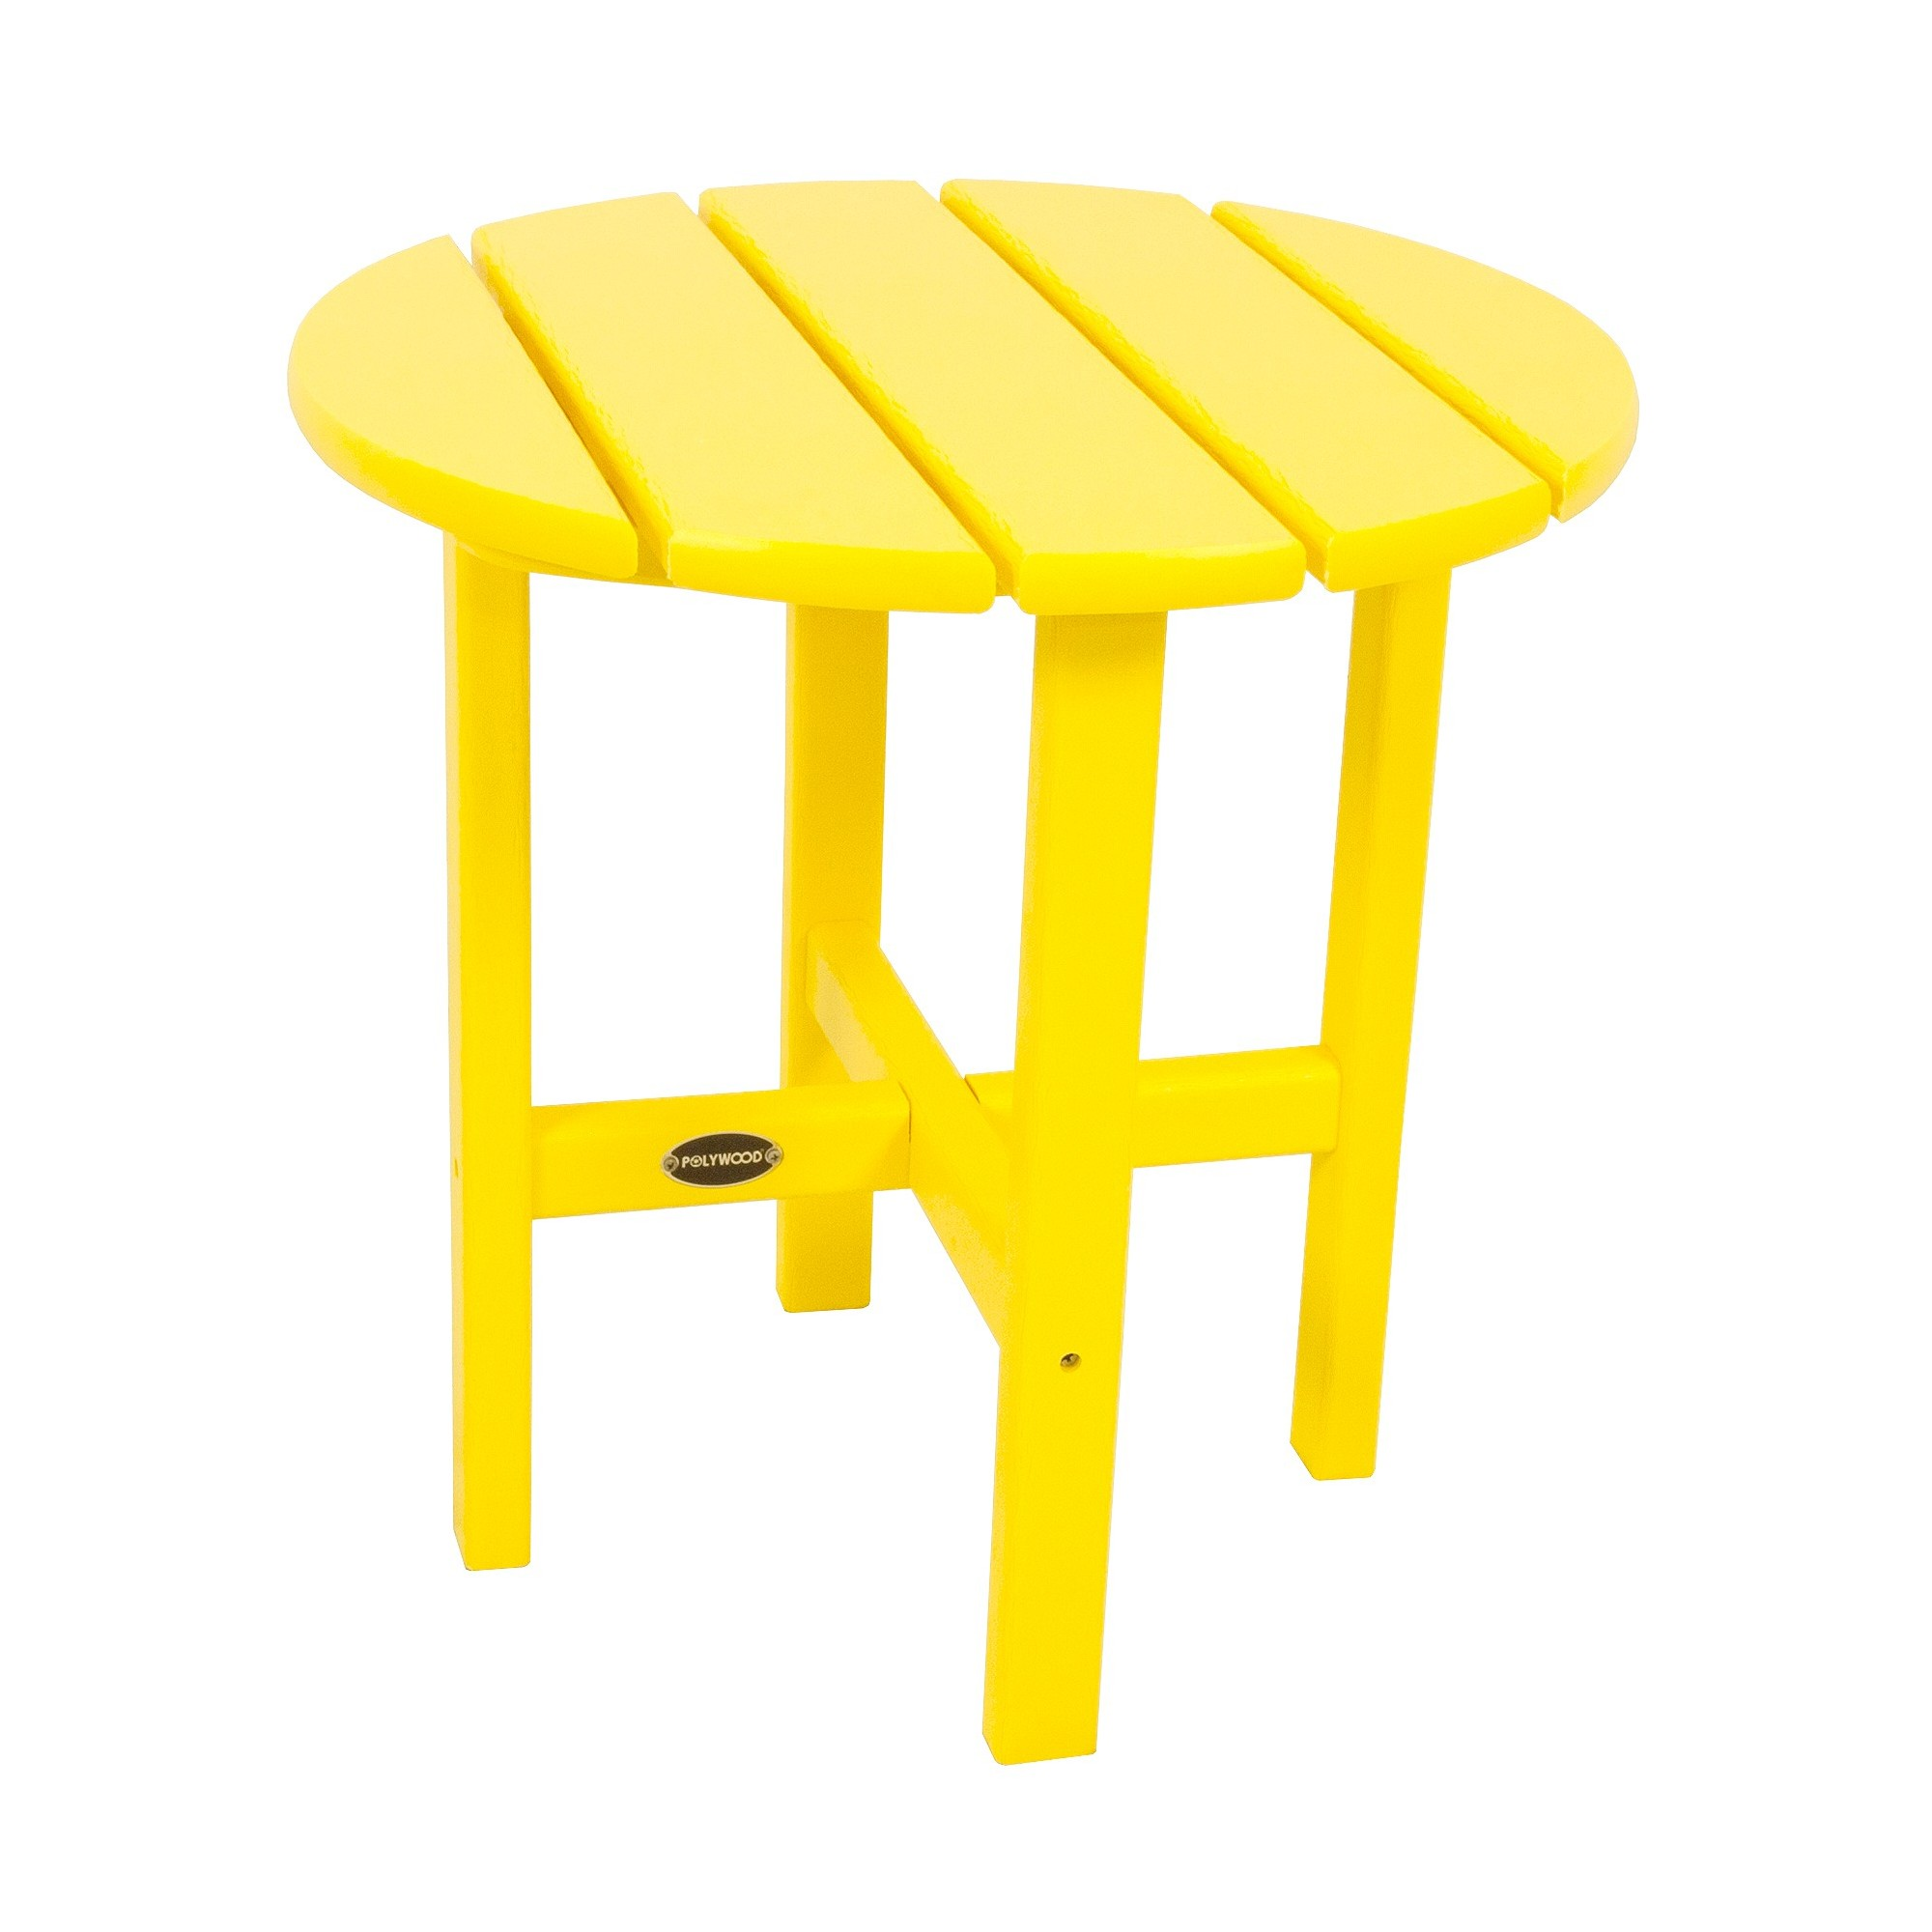 polywood round patio side table yellow products outdoor plastic beechwood end accent cherry light shades wooden farmhouse target white coffee mixed material aluminum legs